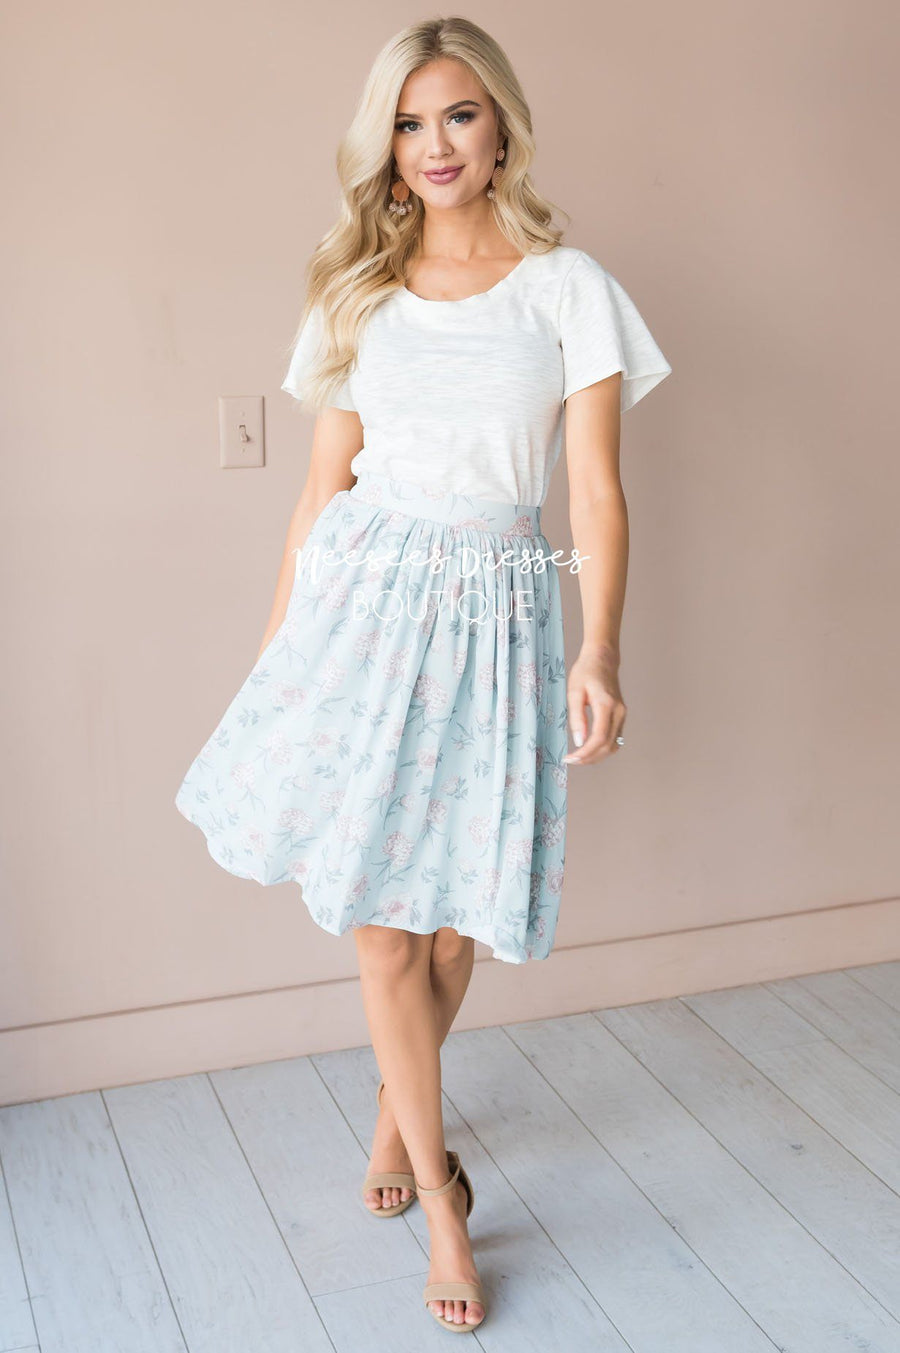 Pastel Blue Floral Chiffon Skirt Skirts vendor-unknown